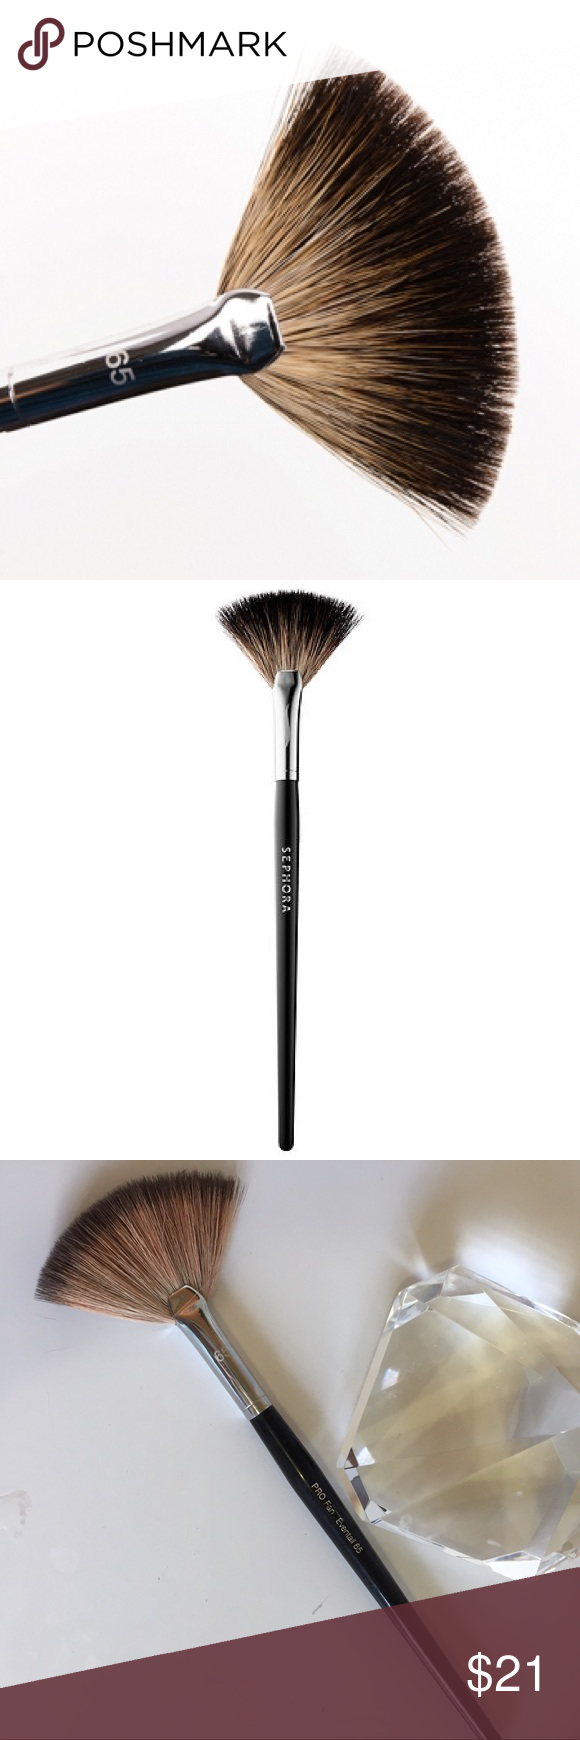 Sephora PRO Fan Highlight Brush 65 (With images